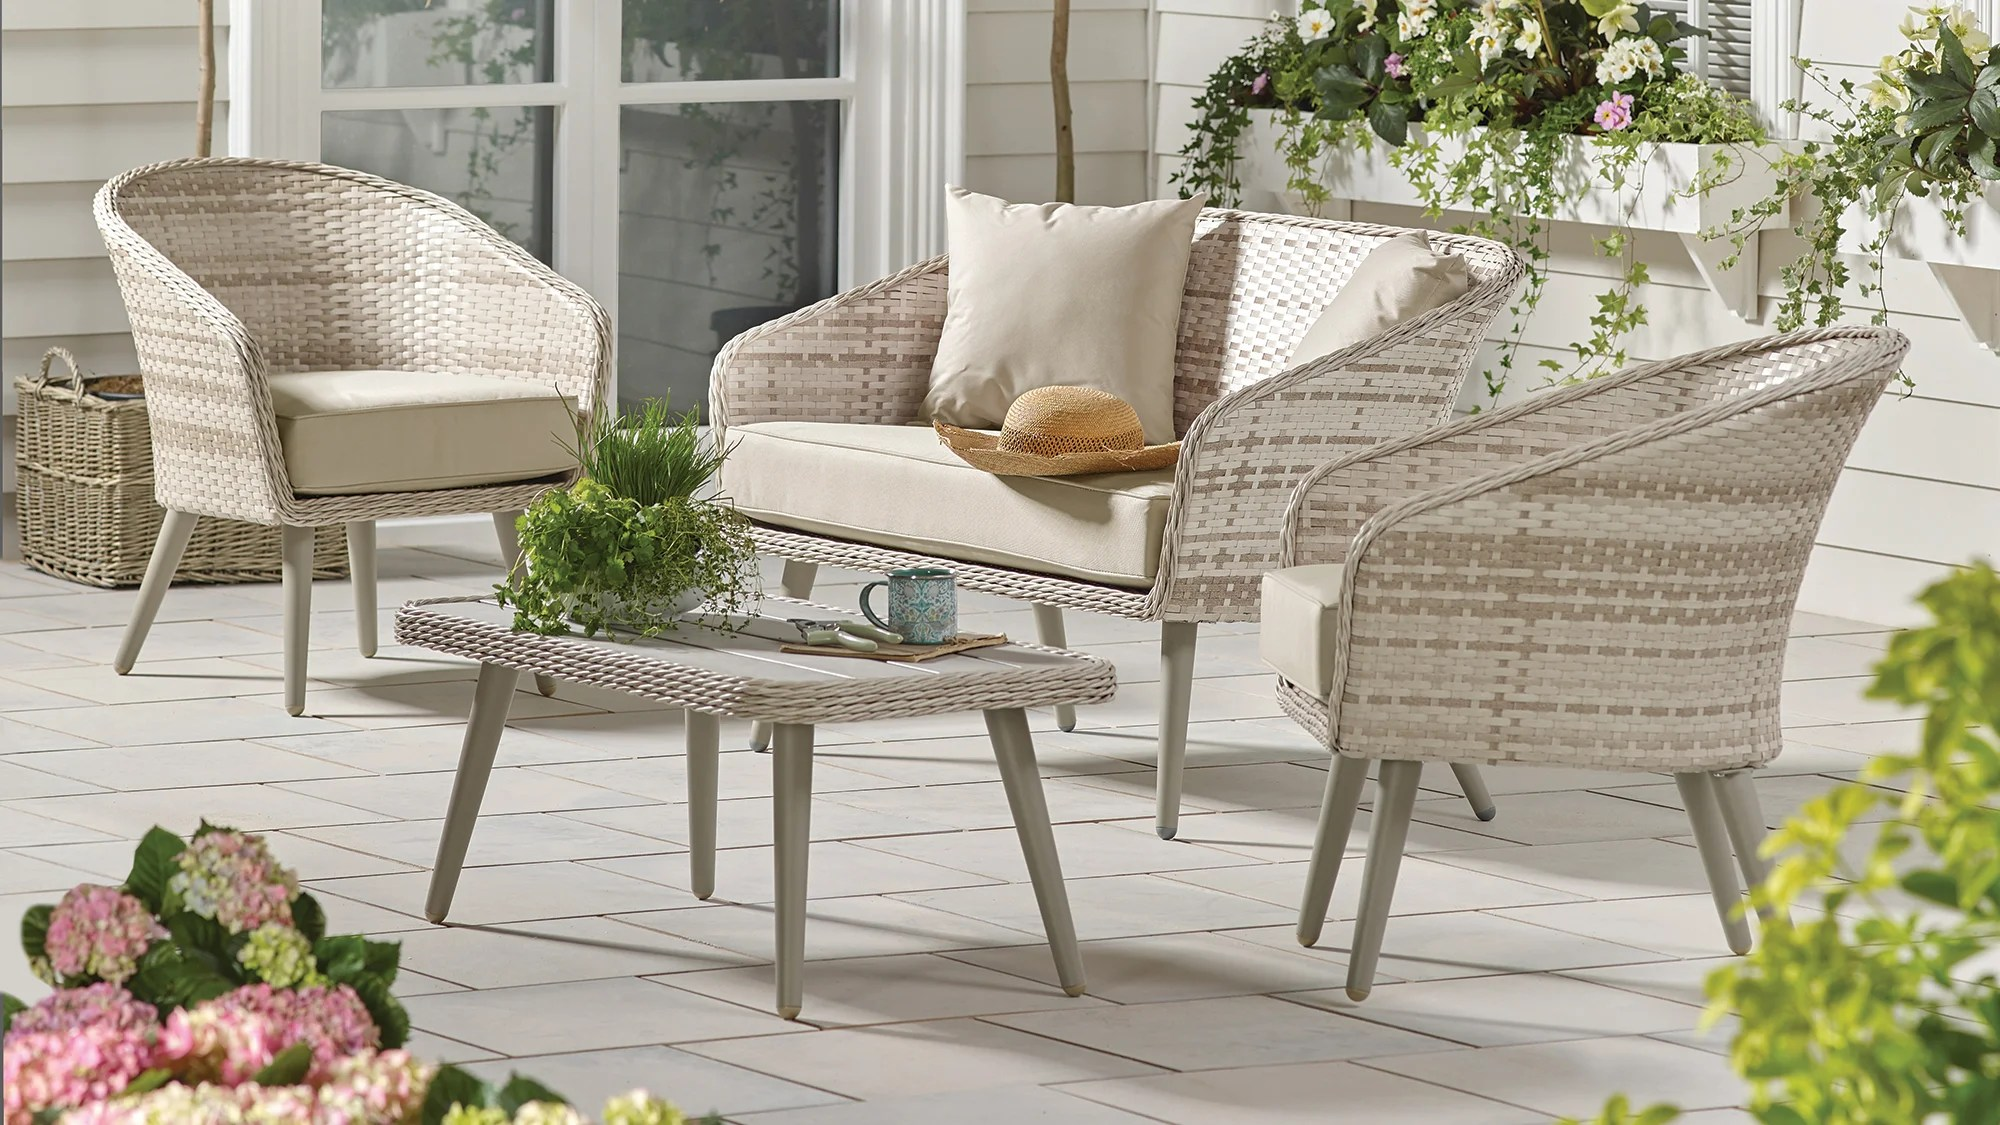 Patio Furniture Table And Chairs Best Garden Furniture 2019 Make The Most Of The Summer Months